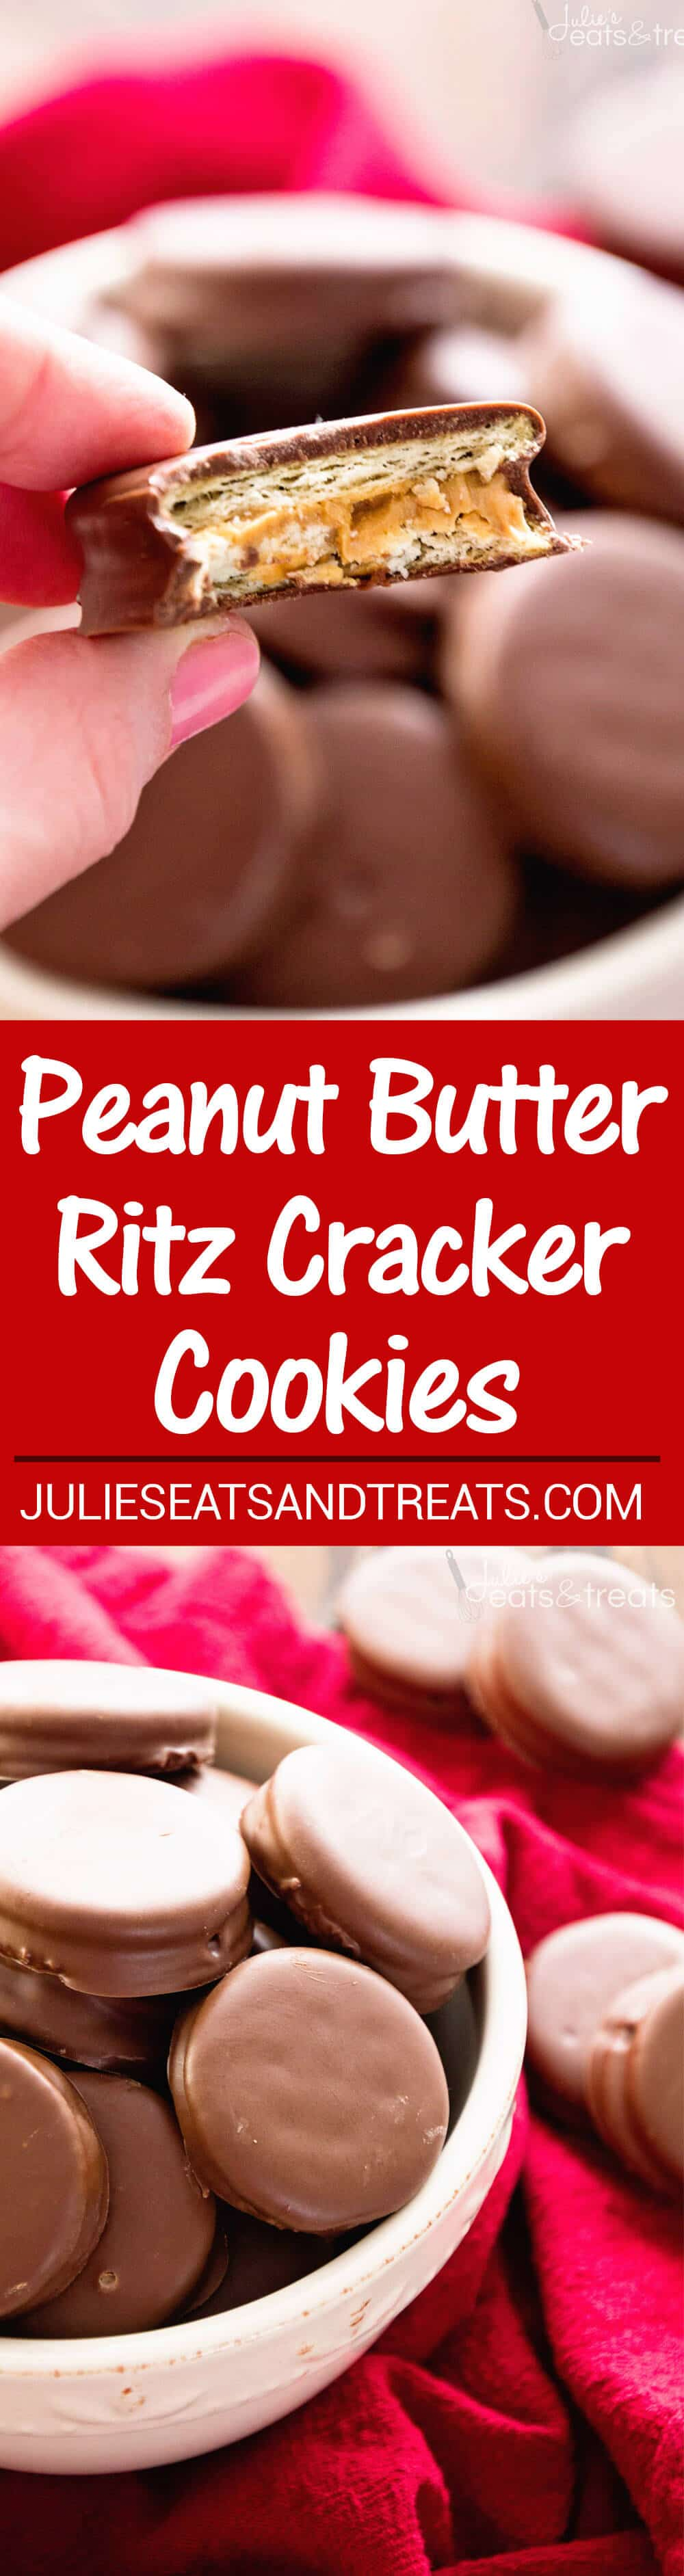 Peanut Butter Ritz Cookies ~ Our FAVORITE treats for the holidays! Easy Christmas Cookies! Chocolate Dipped Ritz Crackers Stuffed with Peanut Butter, So Easy And Delicious!